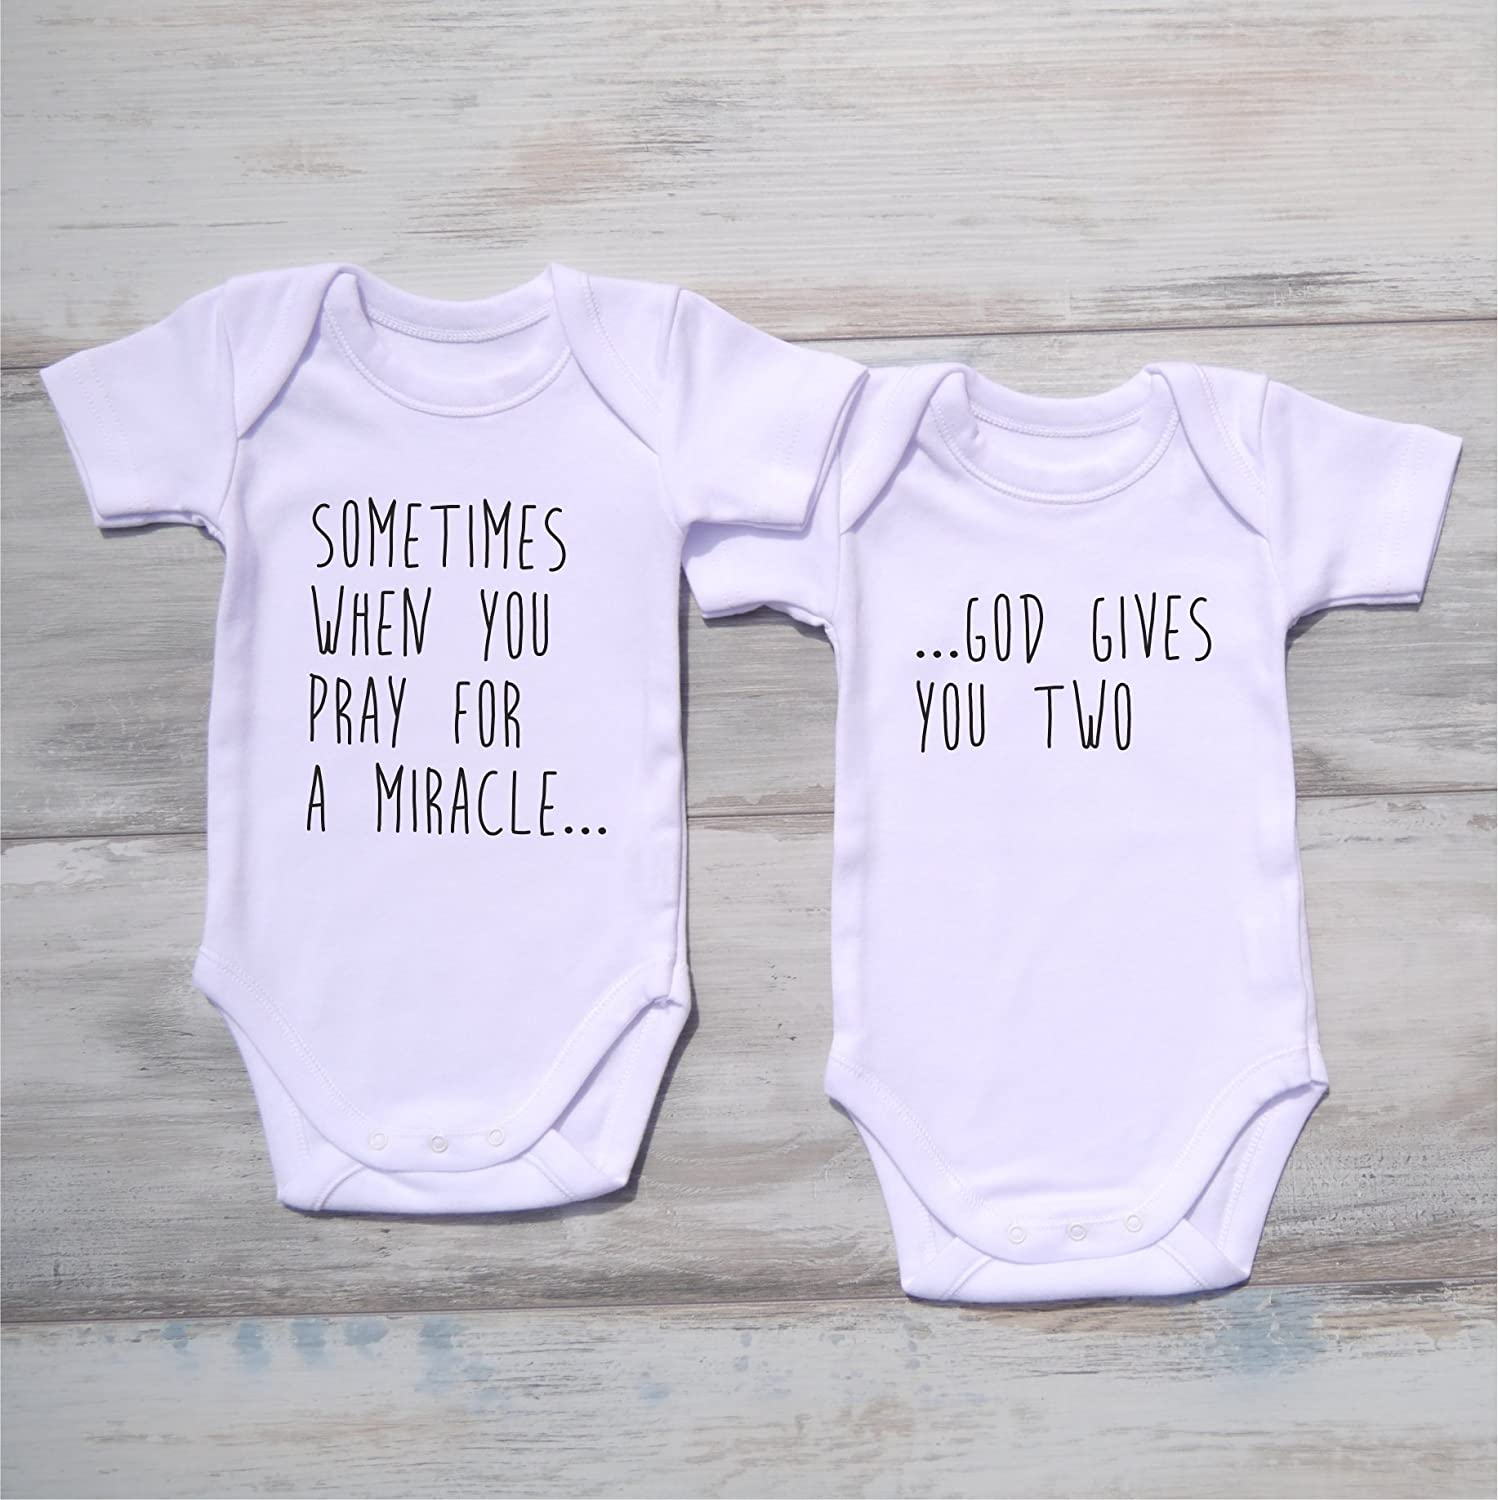 Gender Neutral Twin Baby Gifts, Set of 2 Matching Bodysuits, Short Sleeve, 0-3 Months